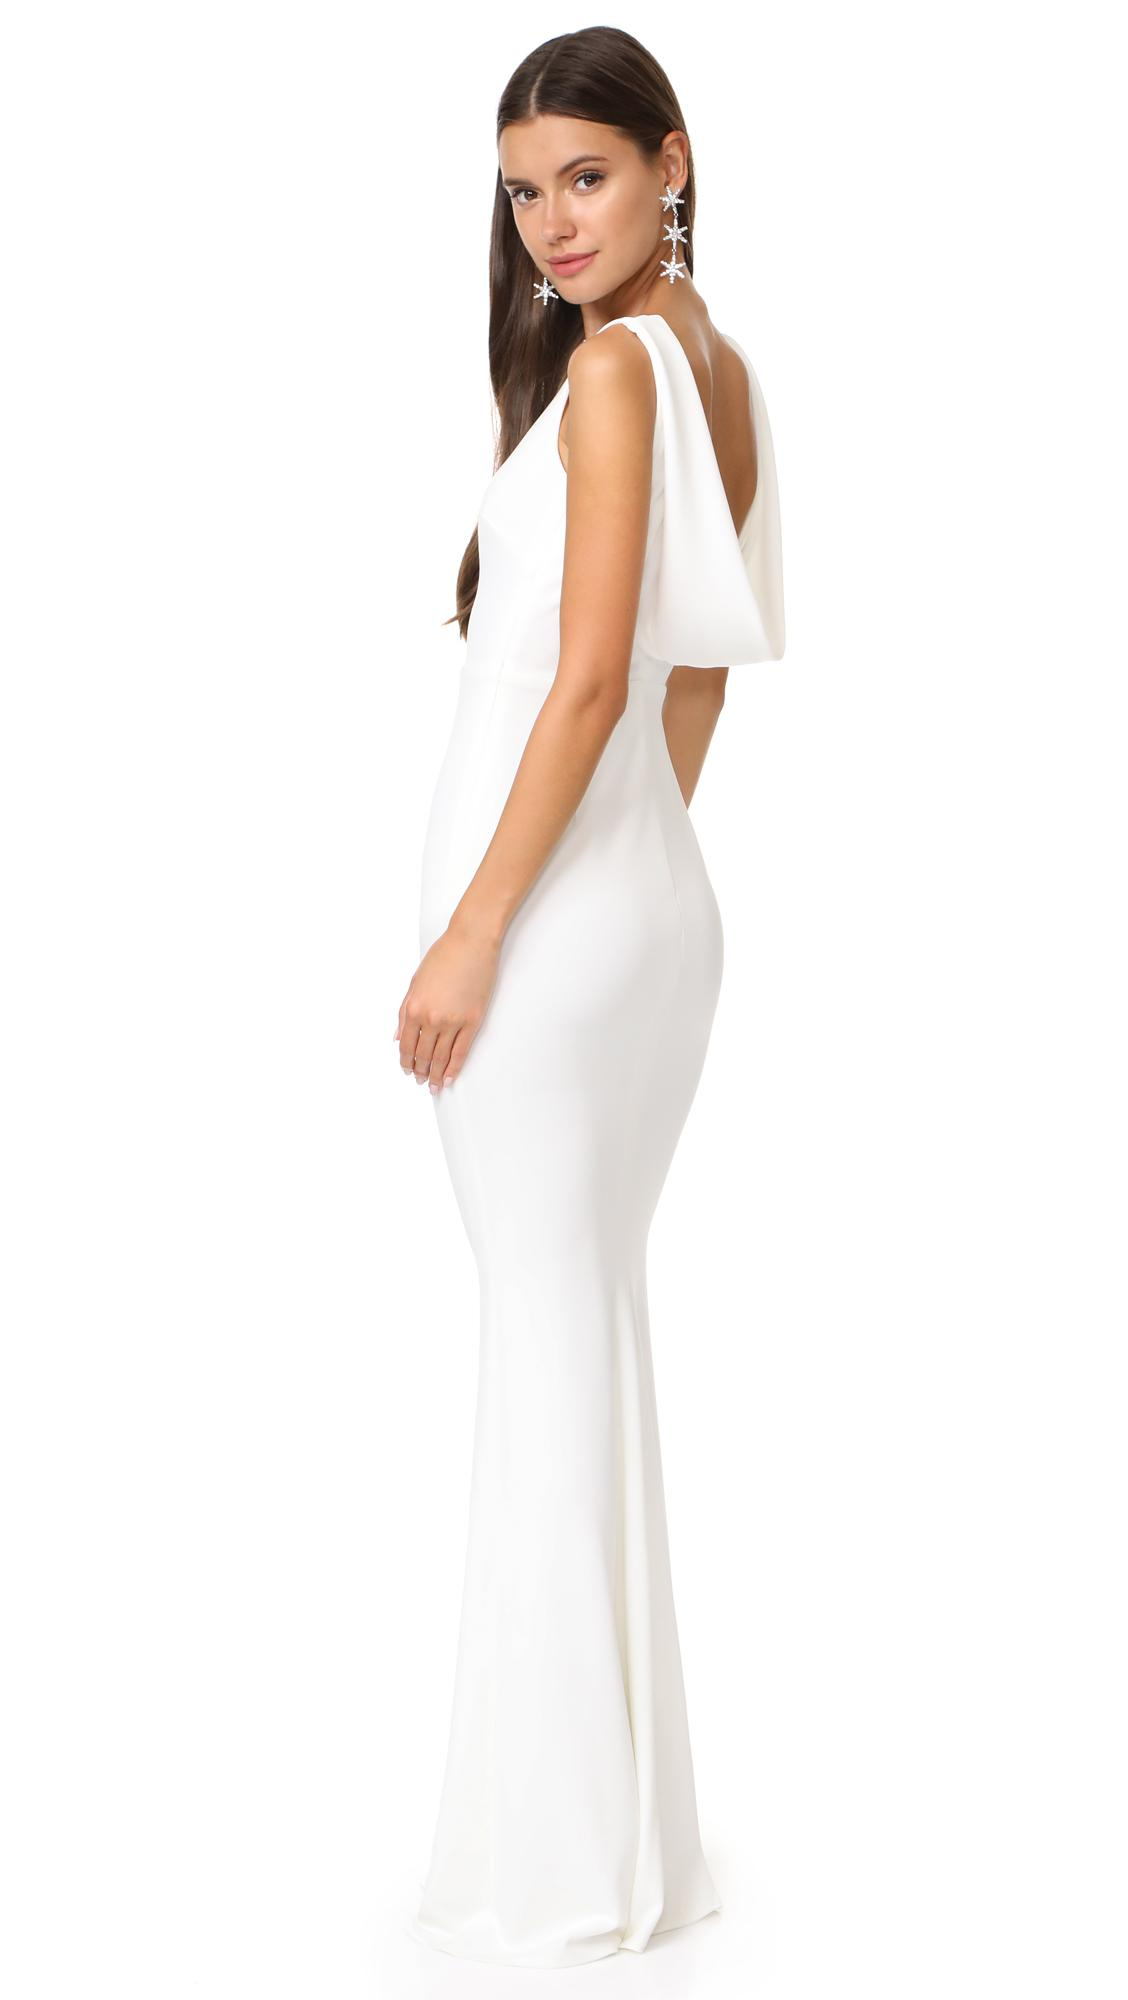 Katie May Vionnet Gown in White - Lyst